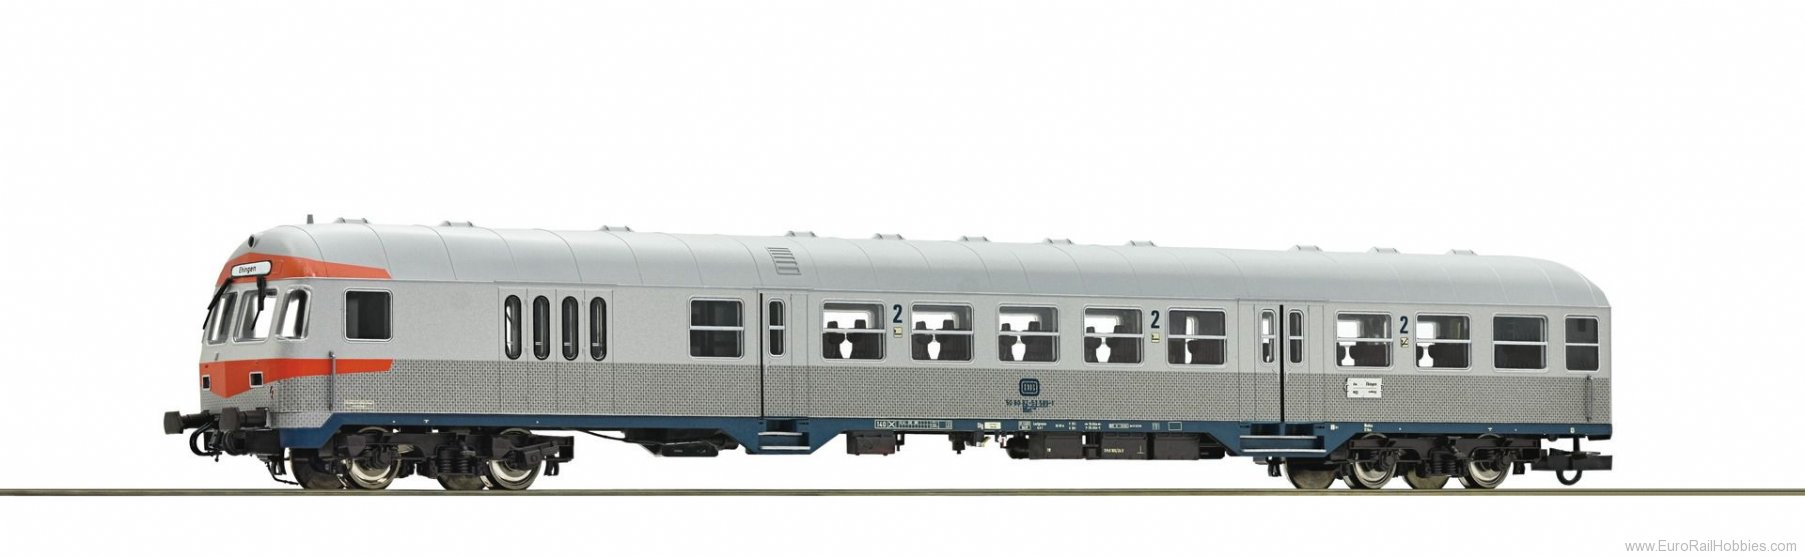 Roco 64663 Commuter car with control cab, DB